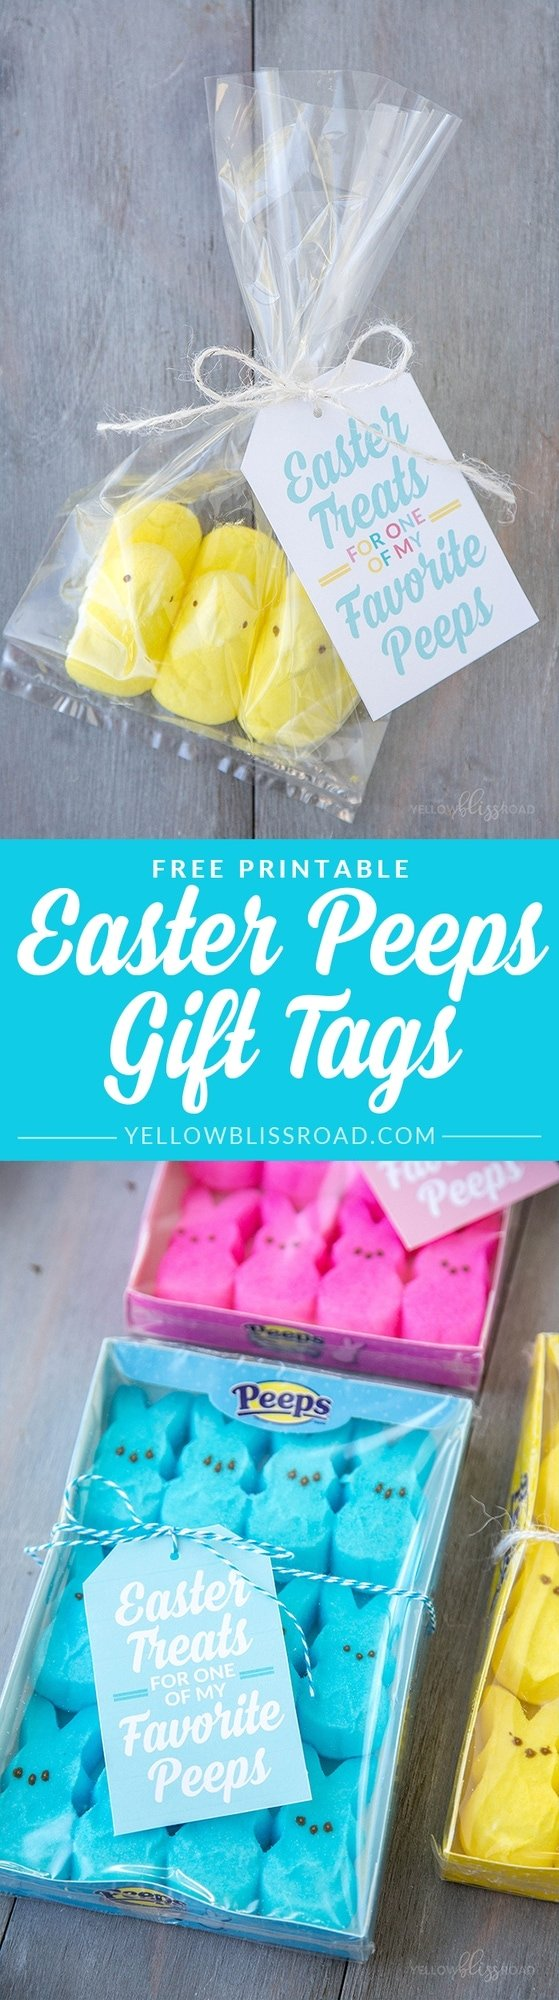 Peeps easter gift idea with free printables yellow bliss road free printable peeps gifts tags for easter cute classroom friends or neighbor easter gifts negle Image collections